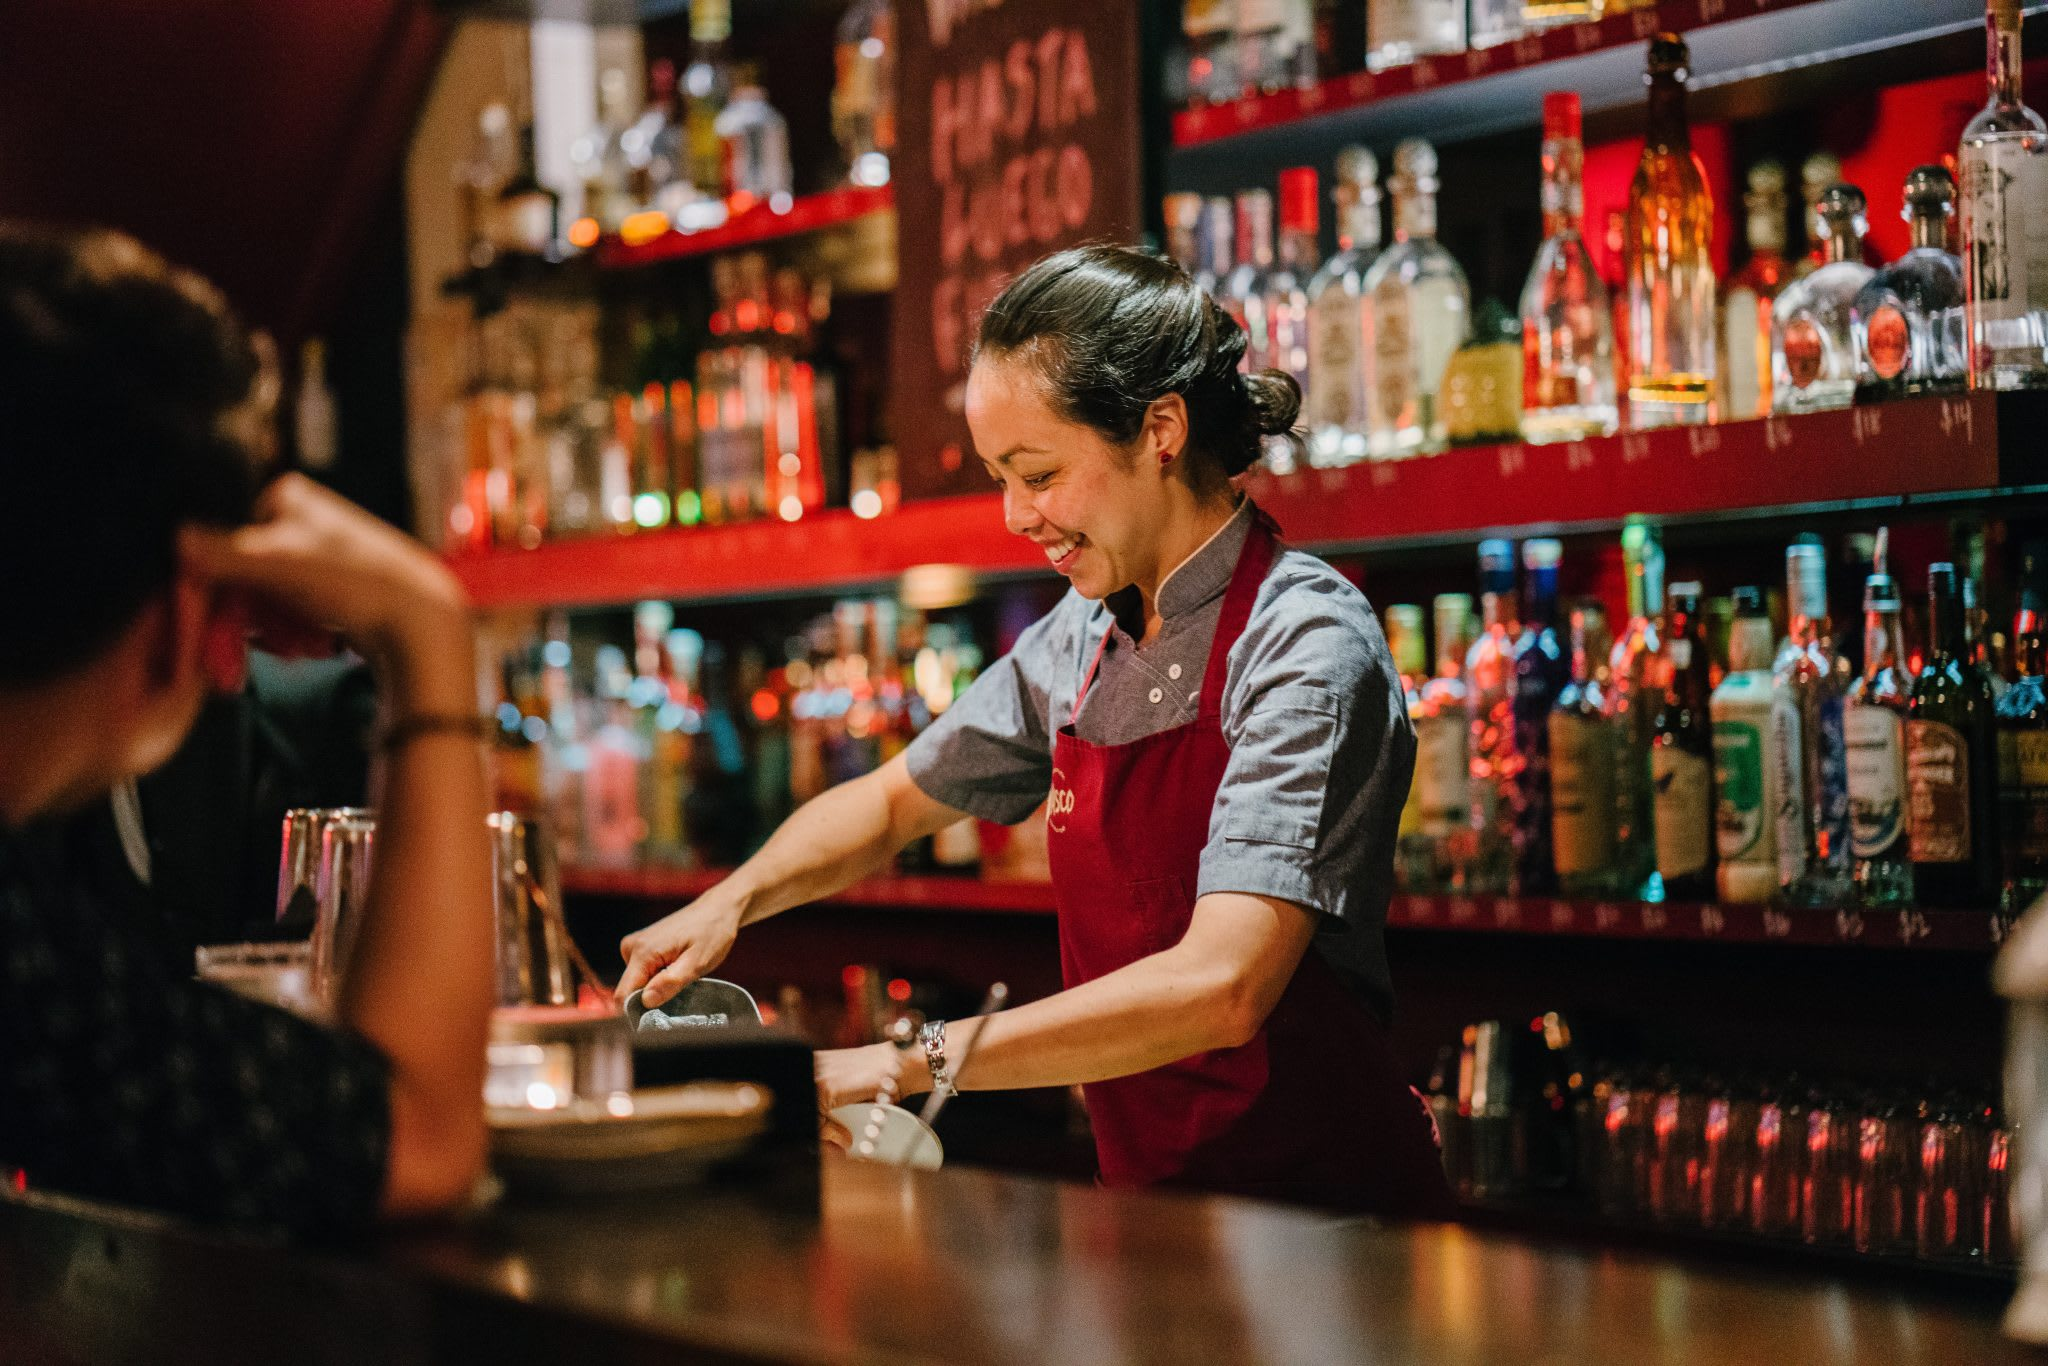 bar, bartender, woman, liquor bottles, bar inventory management